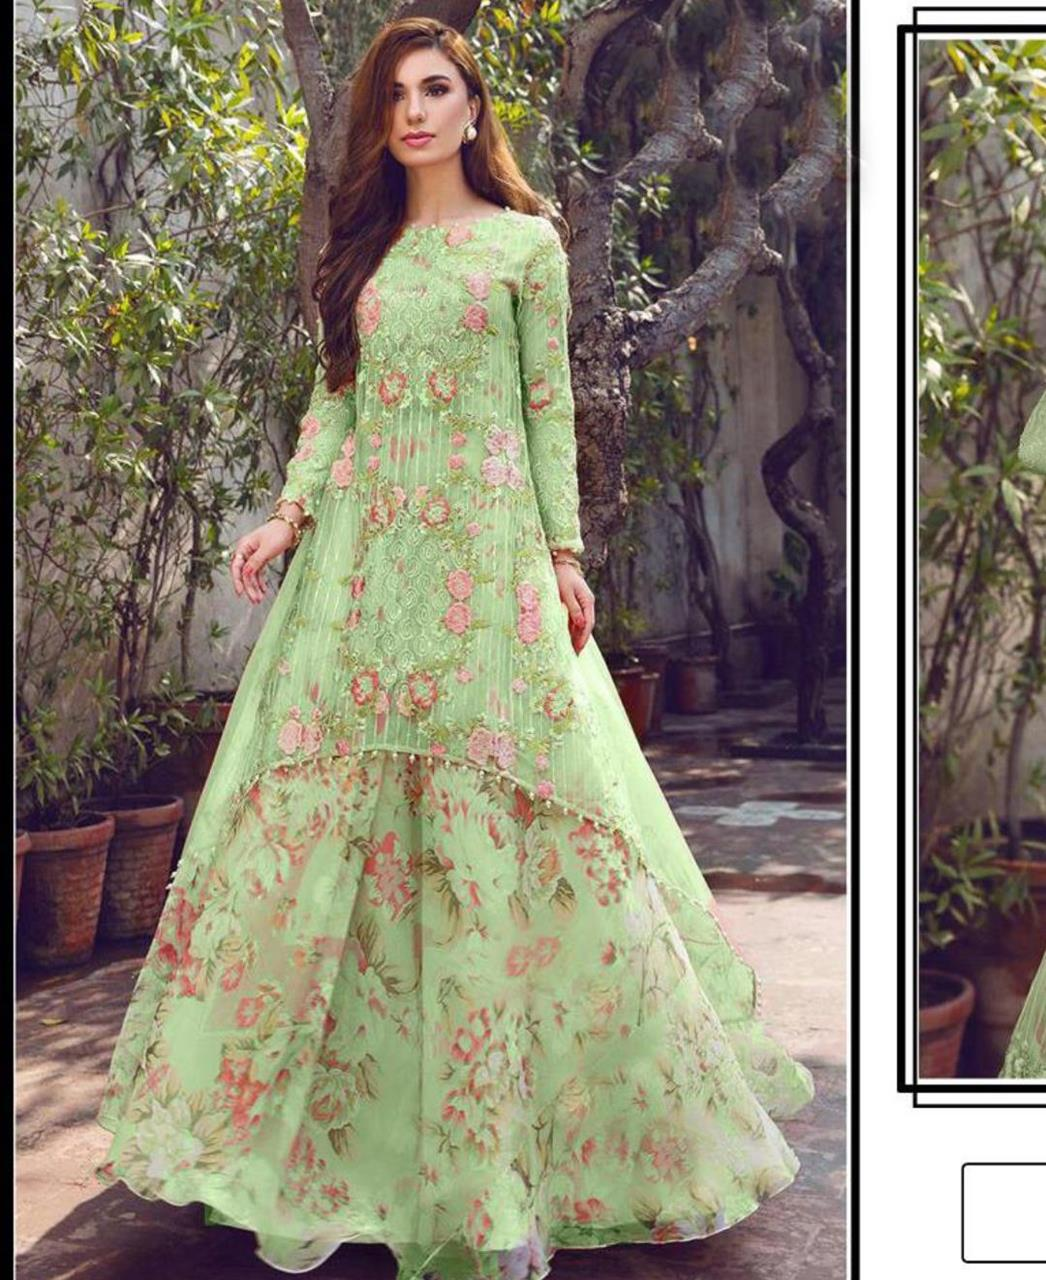 Printed Georgette Lehenga in Sea Green